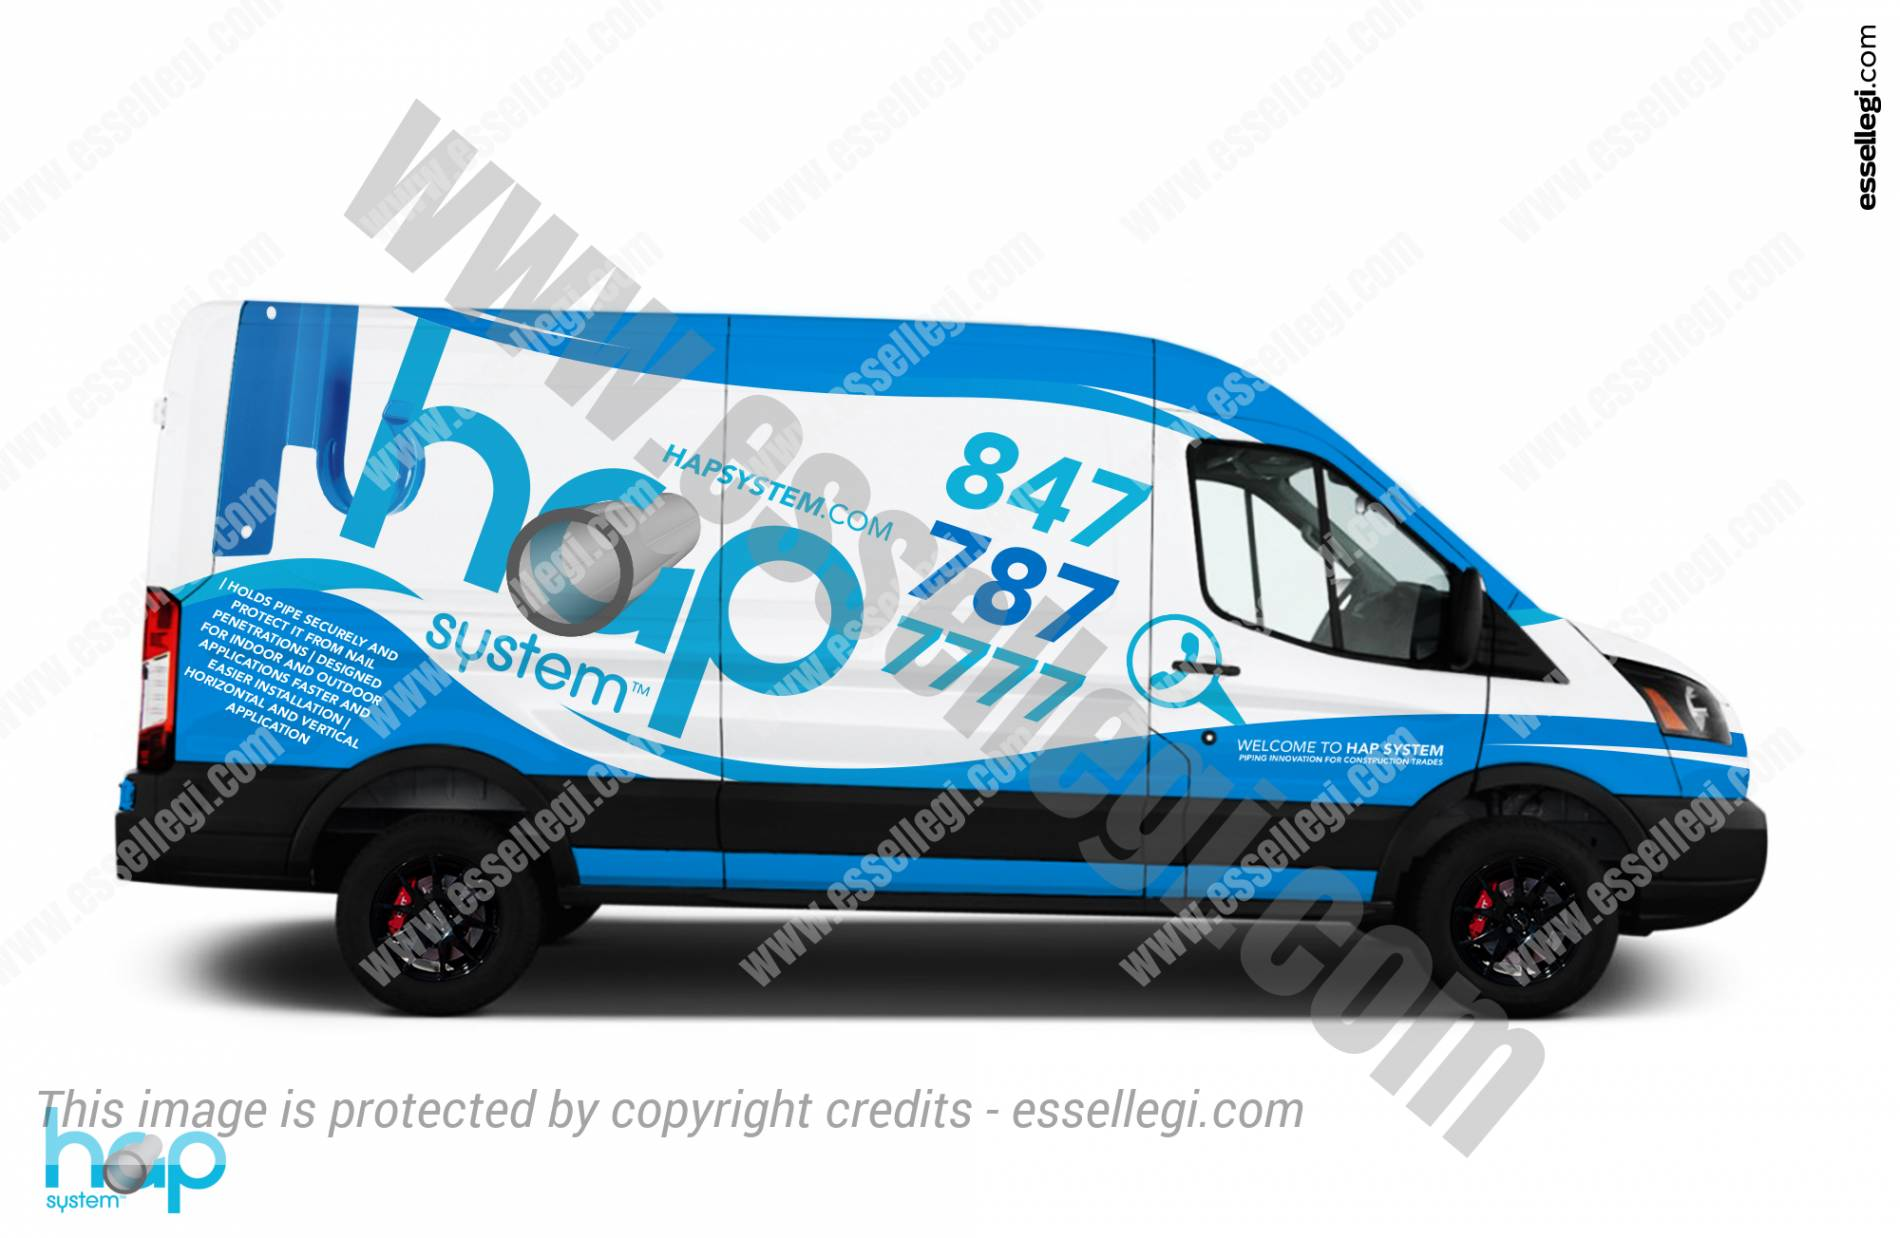 Ford Transit 350 | Van Wrap Design by Essellegi. Van Signs, Van Signage, Van Wrapping, Van Signwriting, Van Wrap Designer, Signs for Van, Van Logo, Van Graphic by Essellegi.